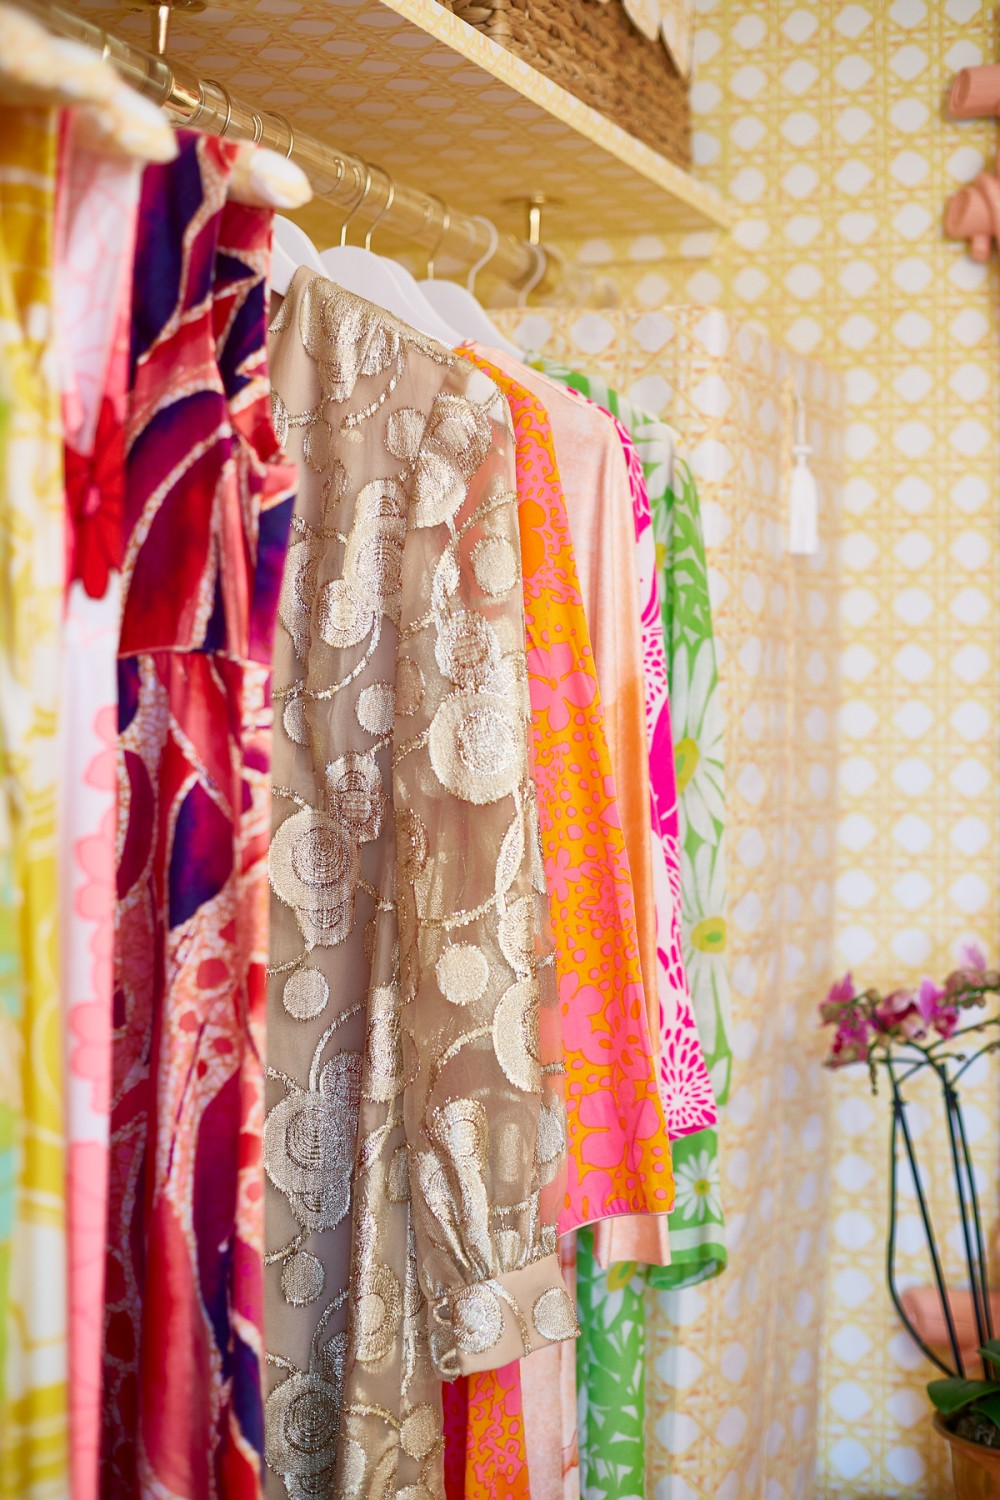 A vintage macramé-inspired wallpaper pattern offers an inspirational template and backdrop for an exuberant wardrobe.